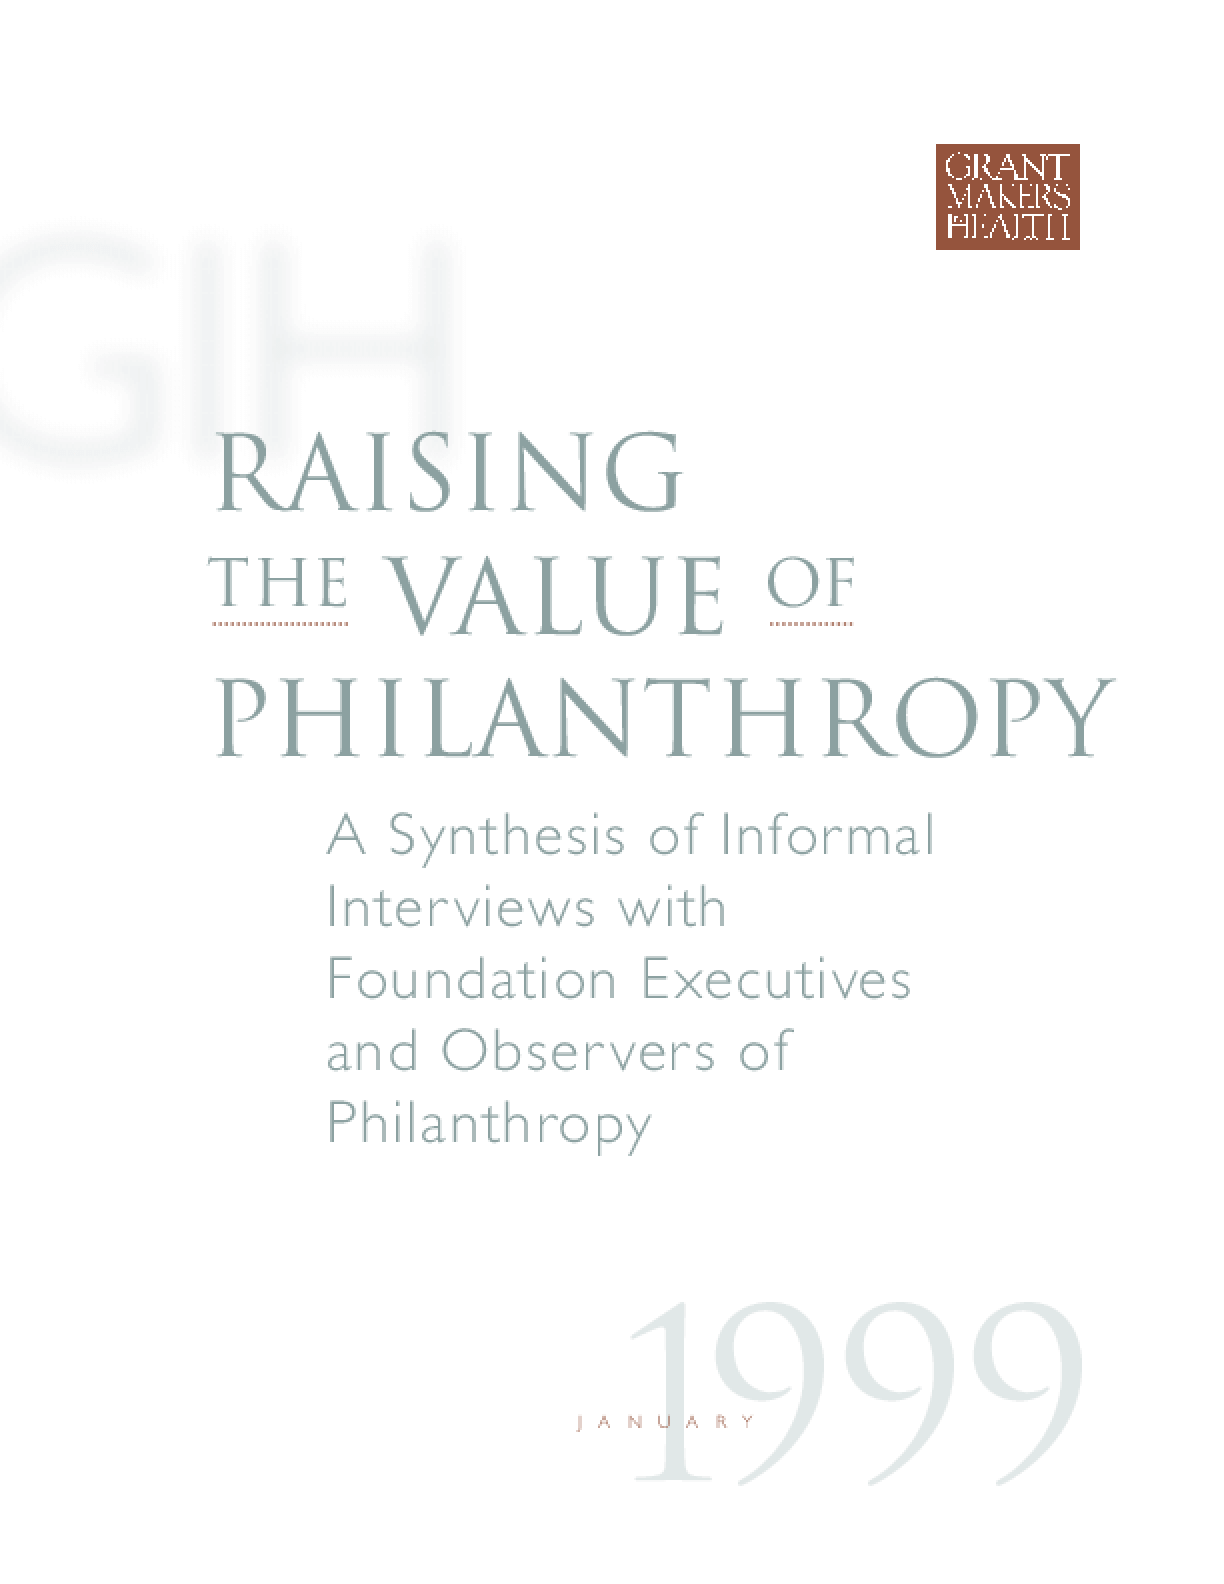 Raising the Value of Philanthropy: A Synthesis of Informal Interviews With Foundation Executives and Observers of Philanthropy